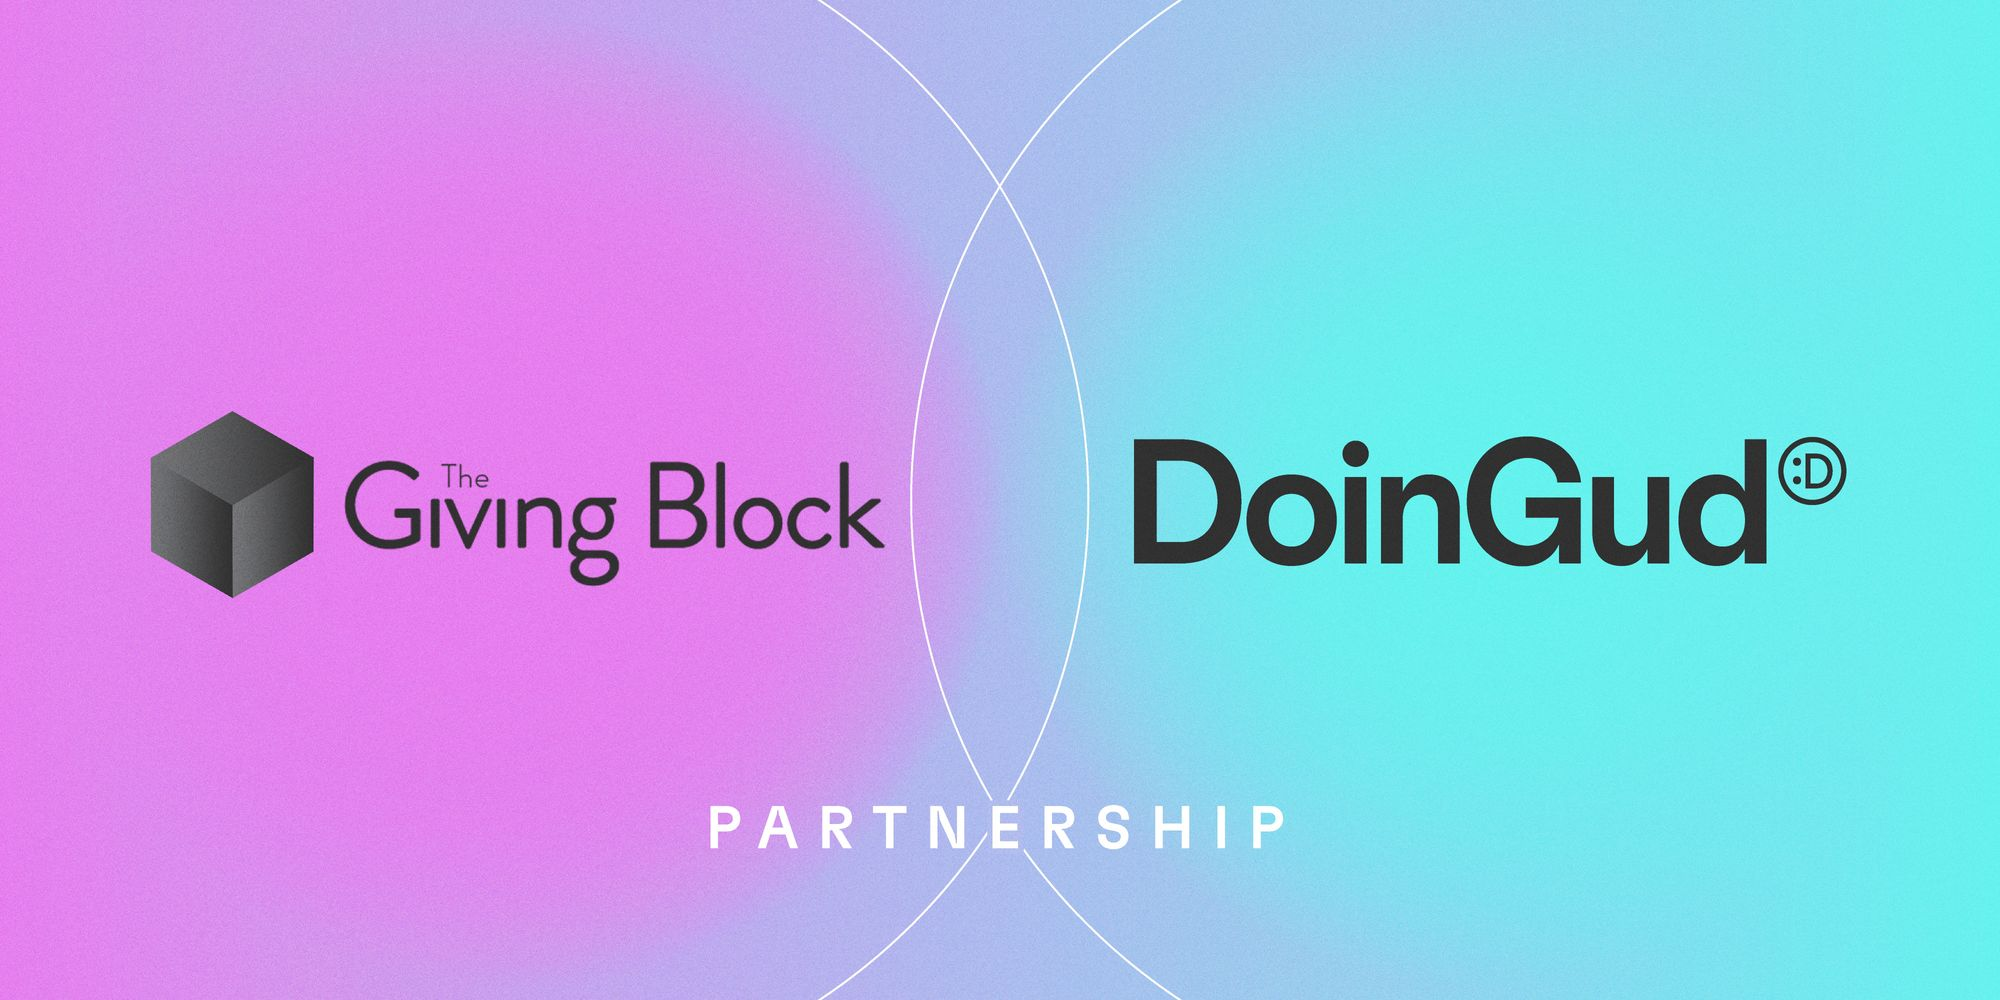 The Giving Block and DoinGud Partnering For The Greater Good